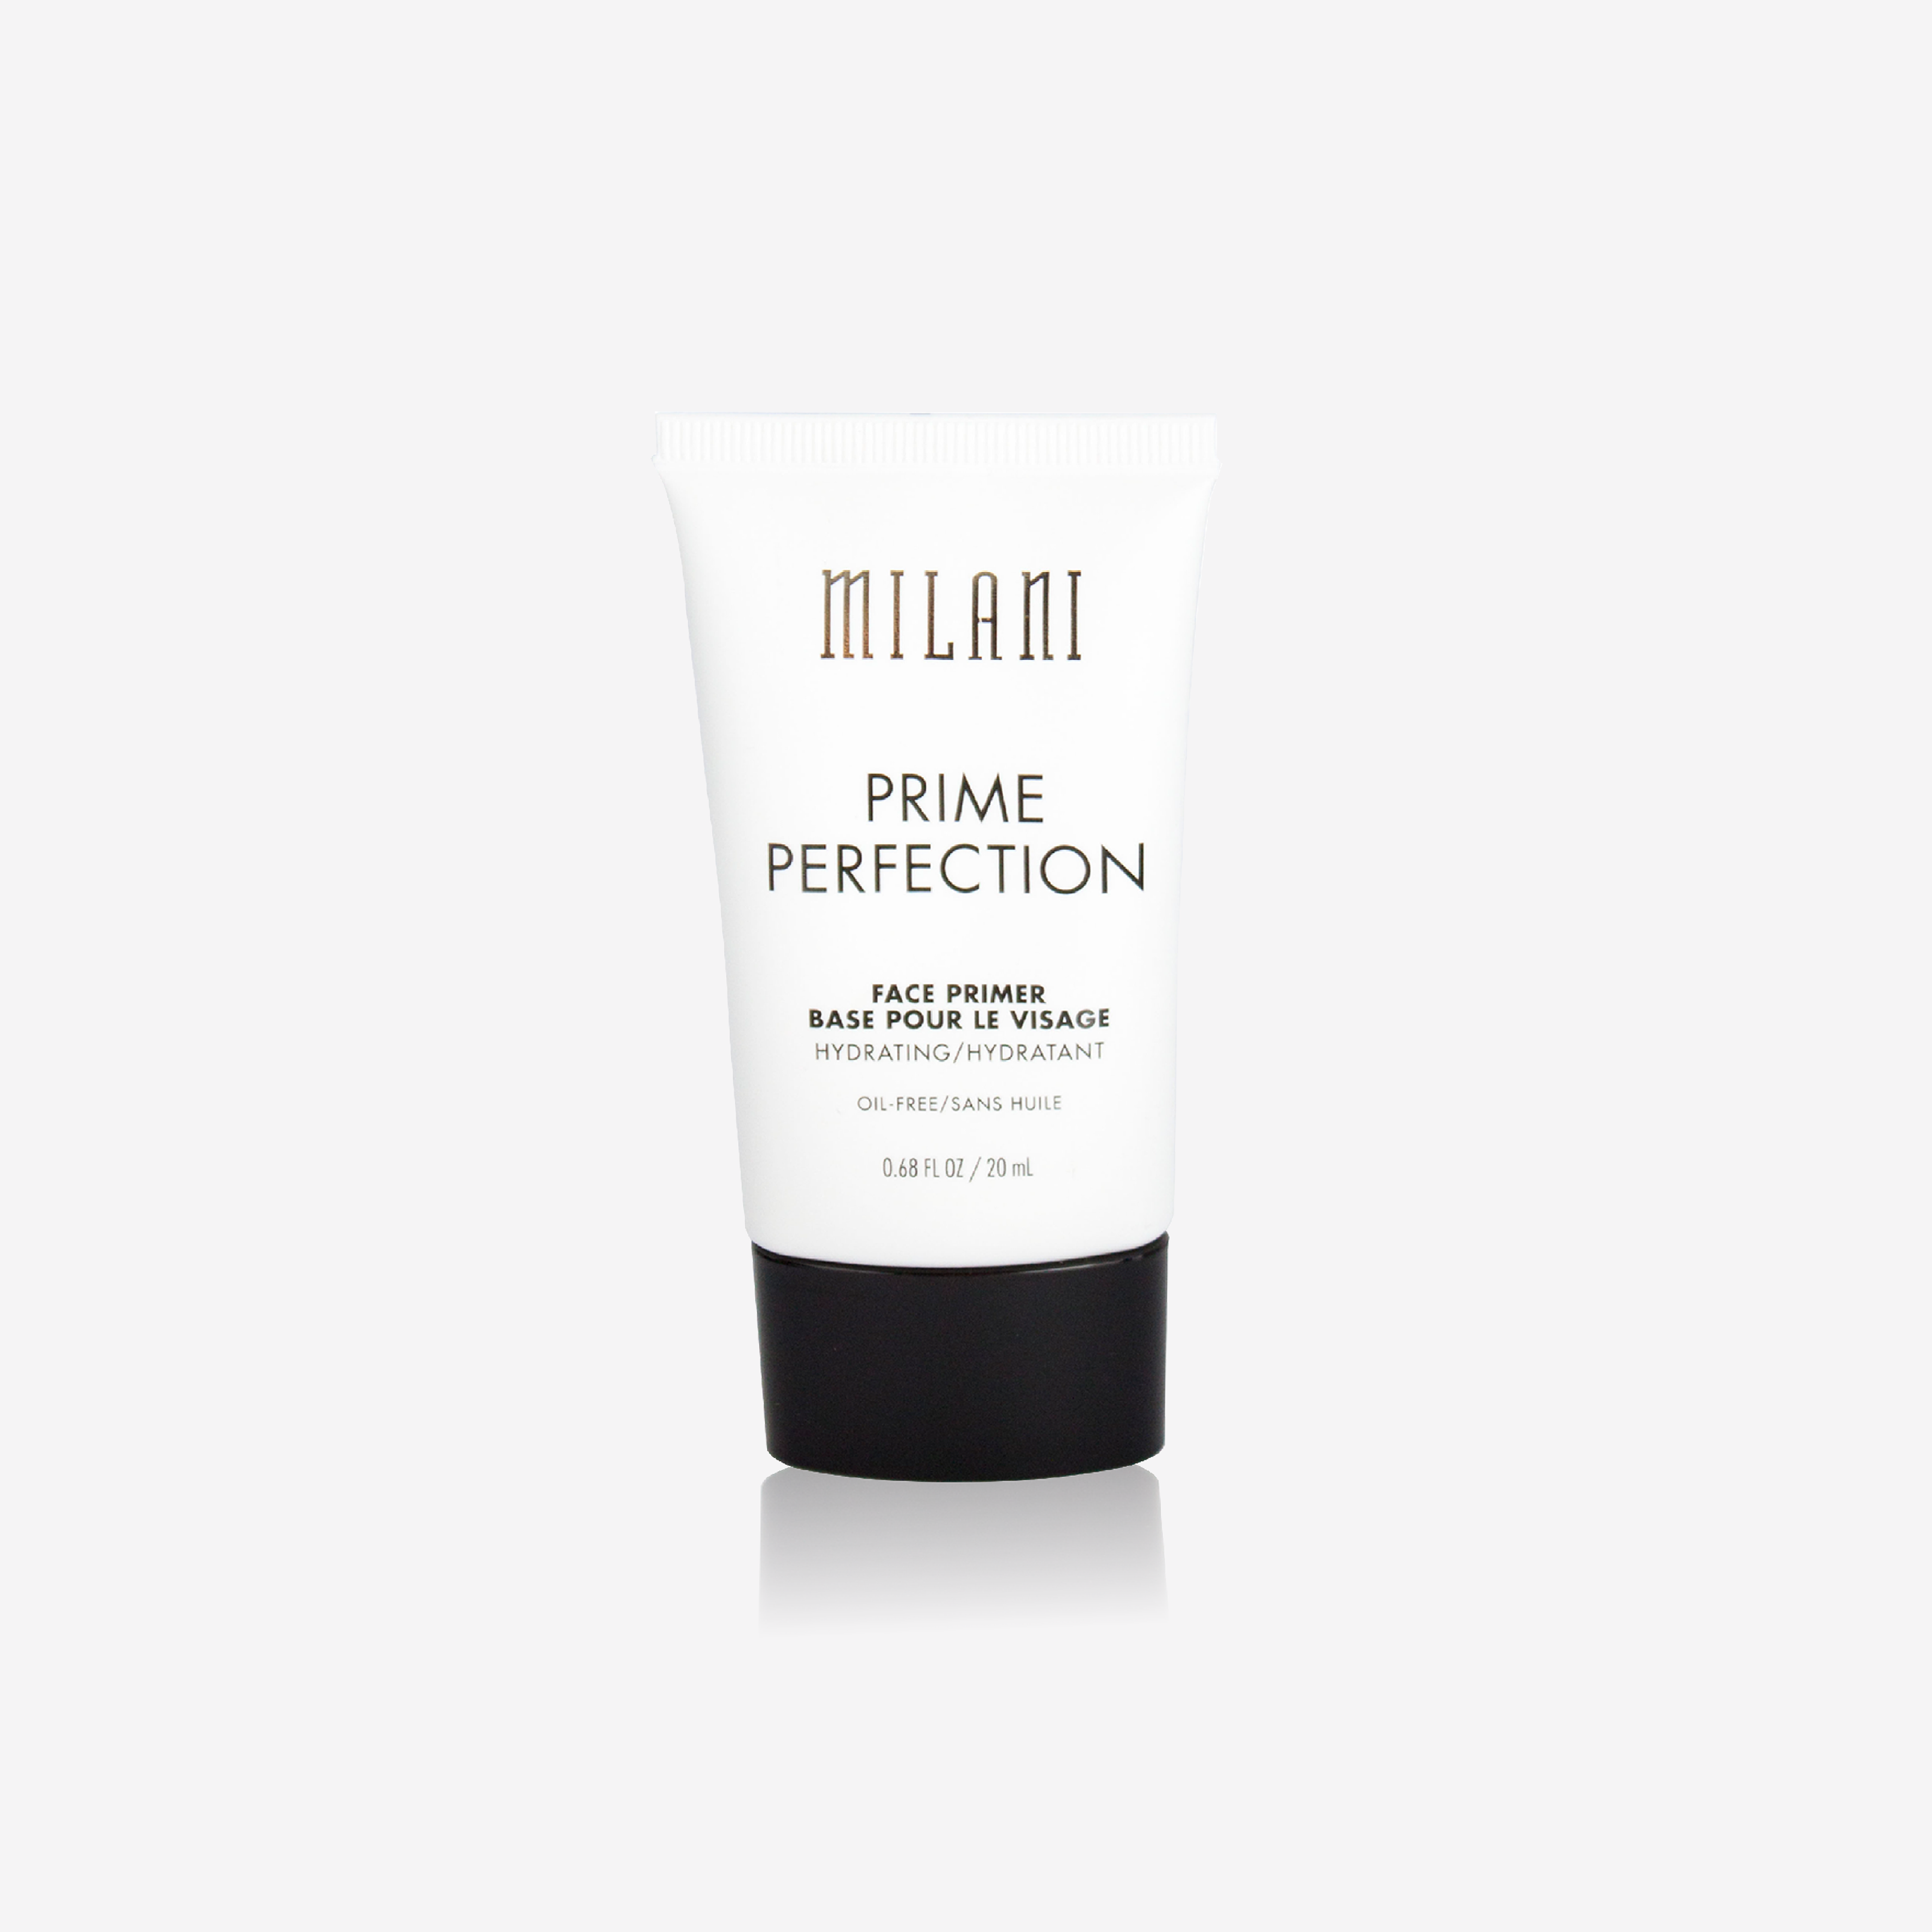 Prime Perfection Face Primer Clear 20ml